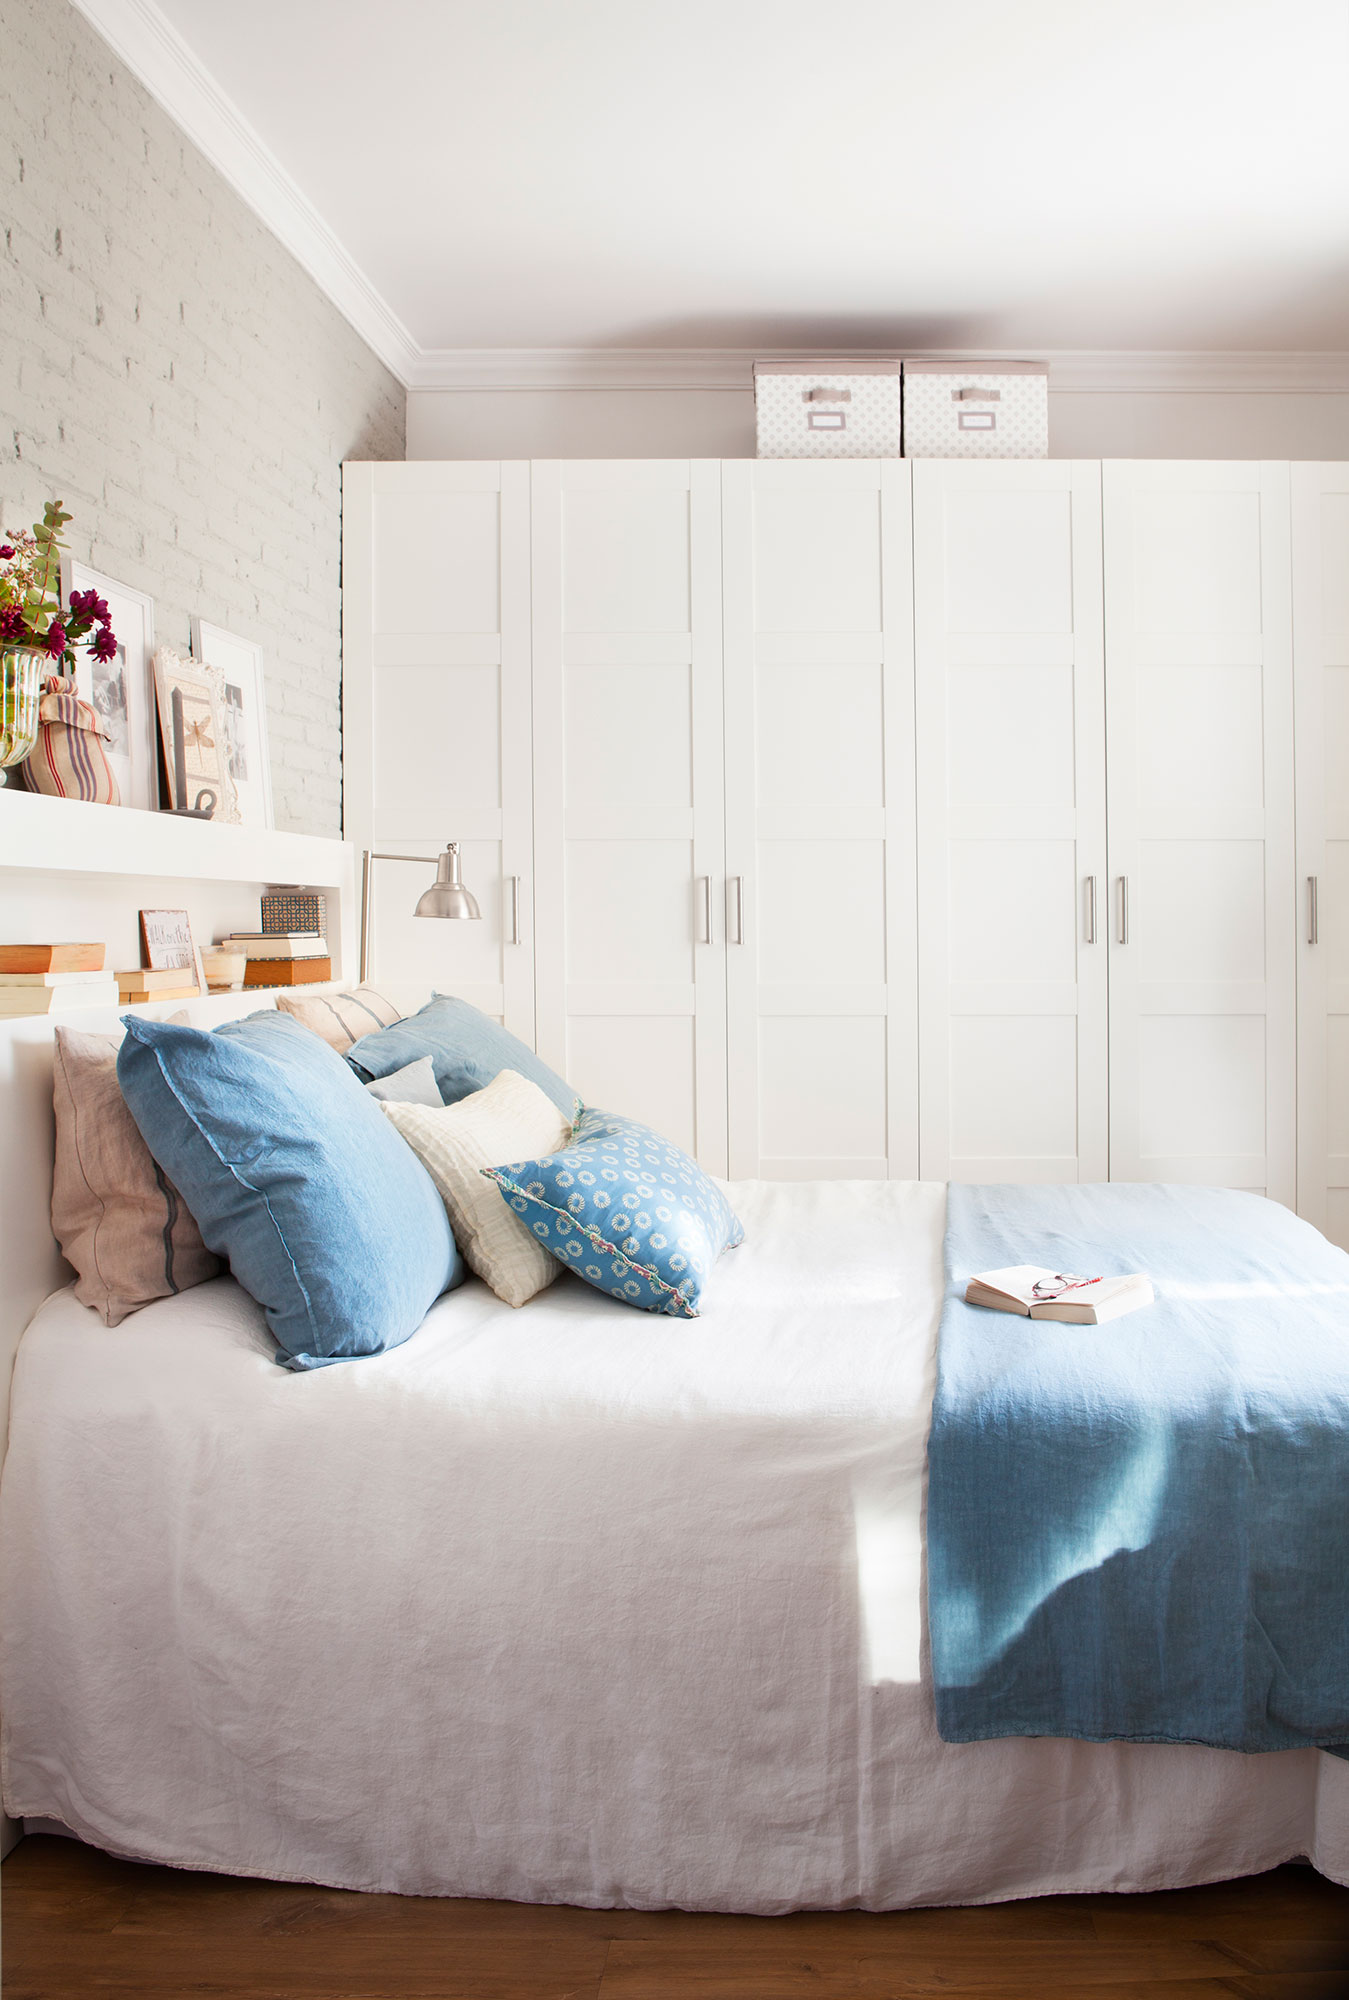 Compartir piso 10 ideas low cost para decorar tu dormitorio for Dormitorio y cocina